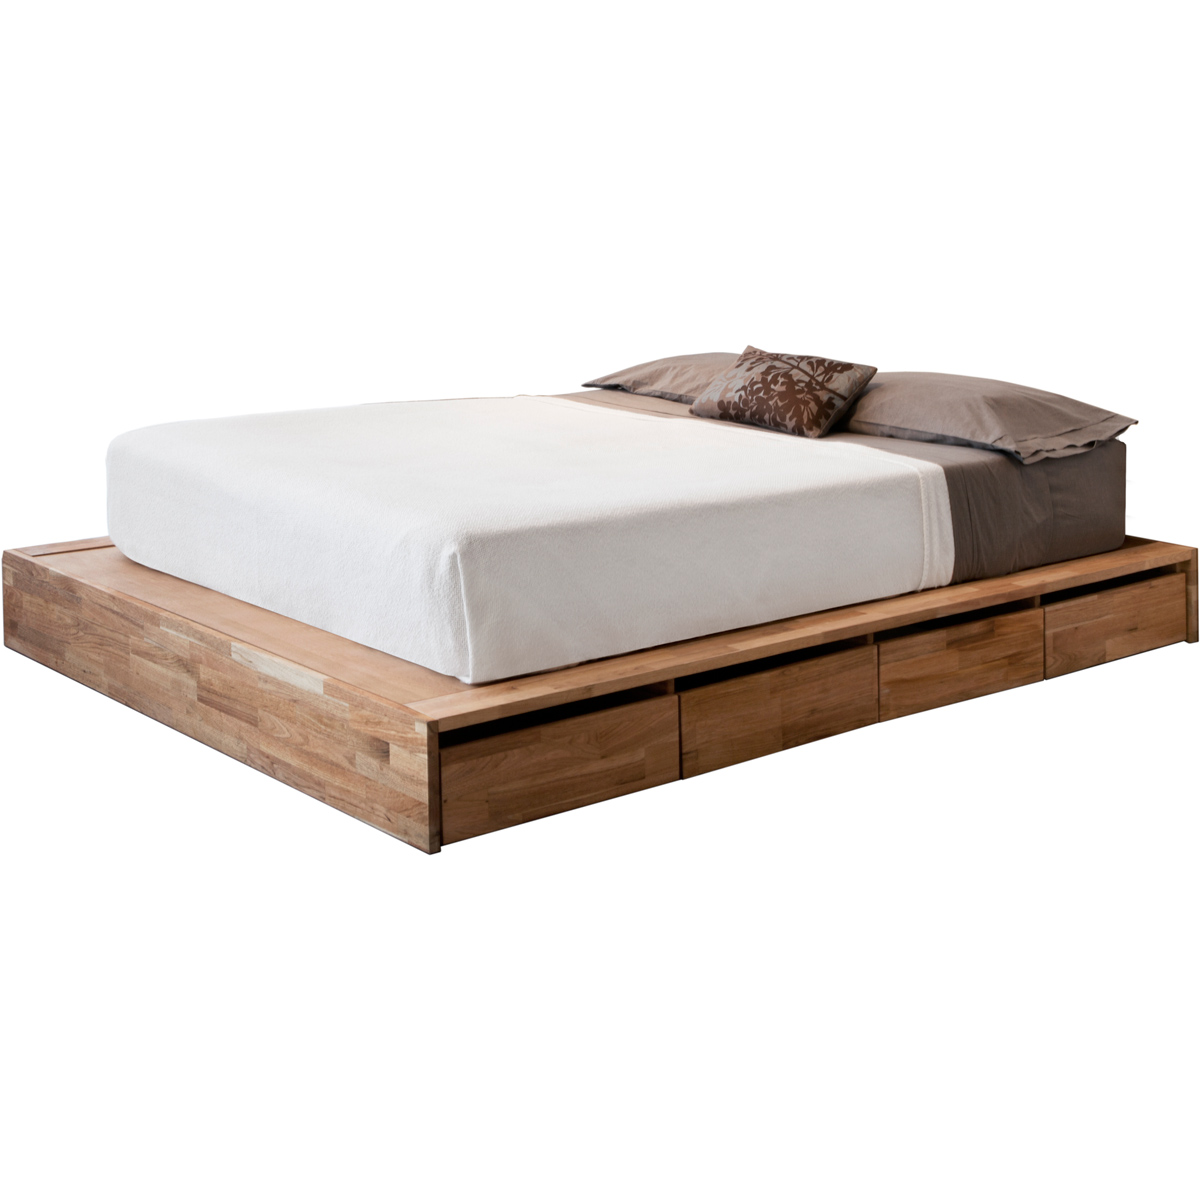 the comfortable and beautiful designs of ikea bed frame with storage that will stun you homesfeed. Black Bedroom Furniture Sets. Home Design Ideas